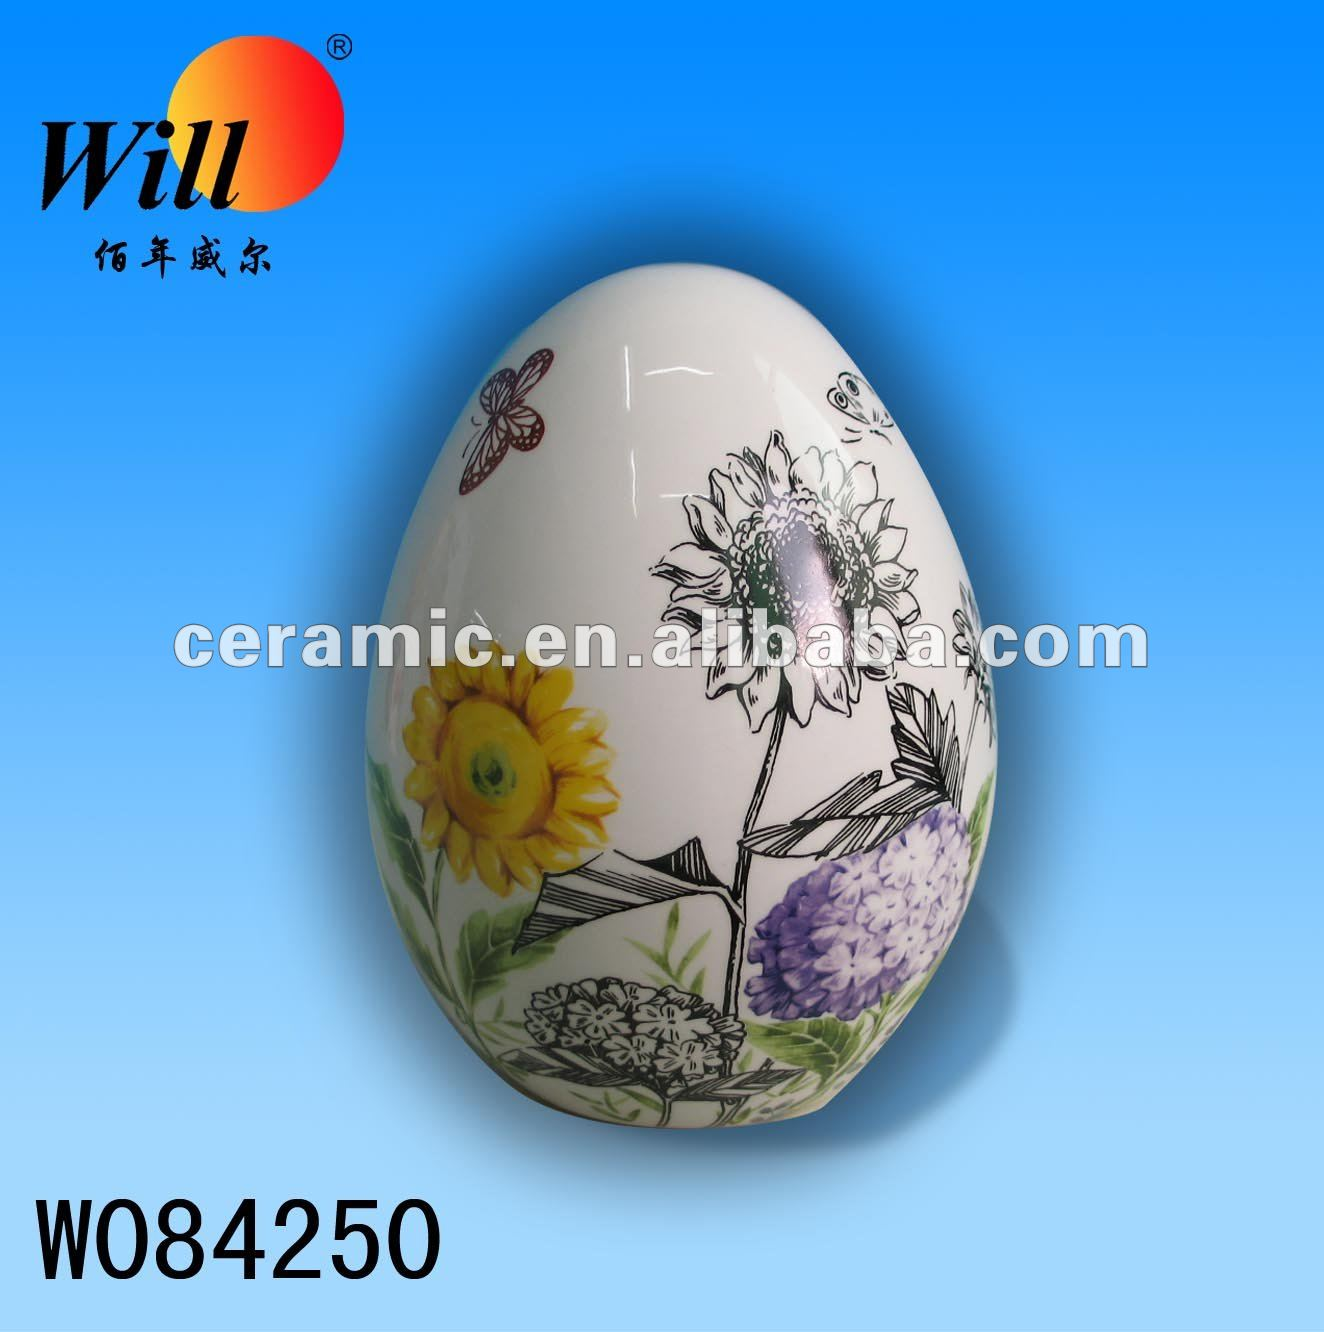 Souvenir Ceramic Easter egg